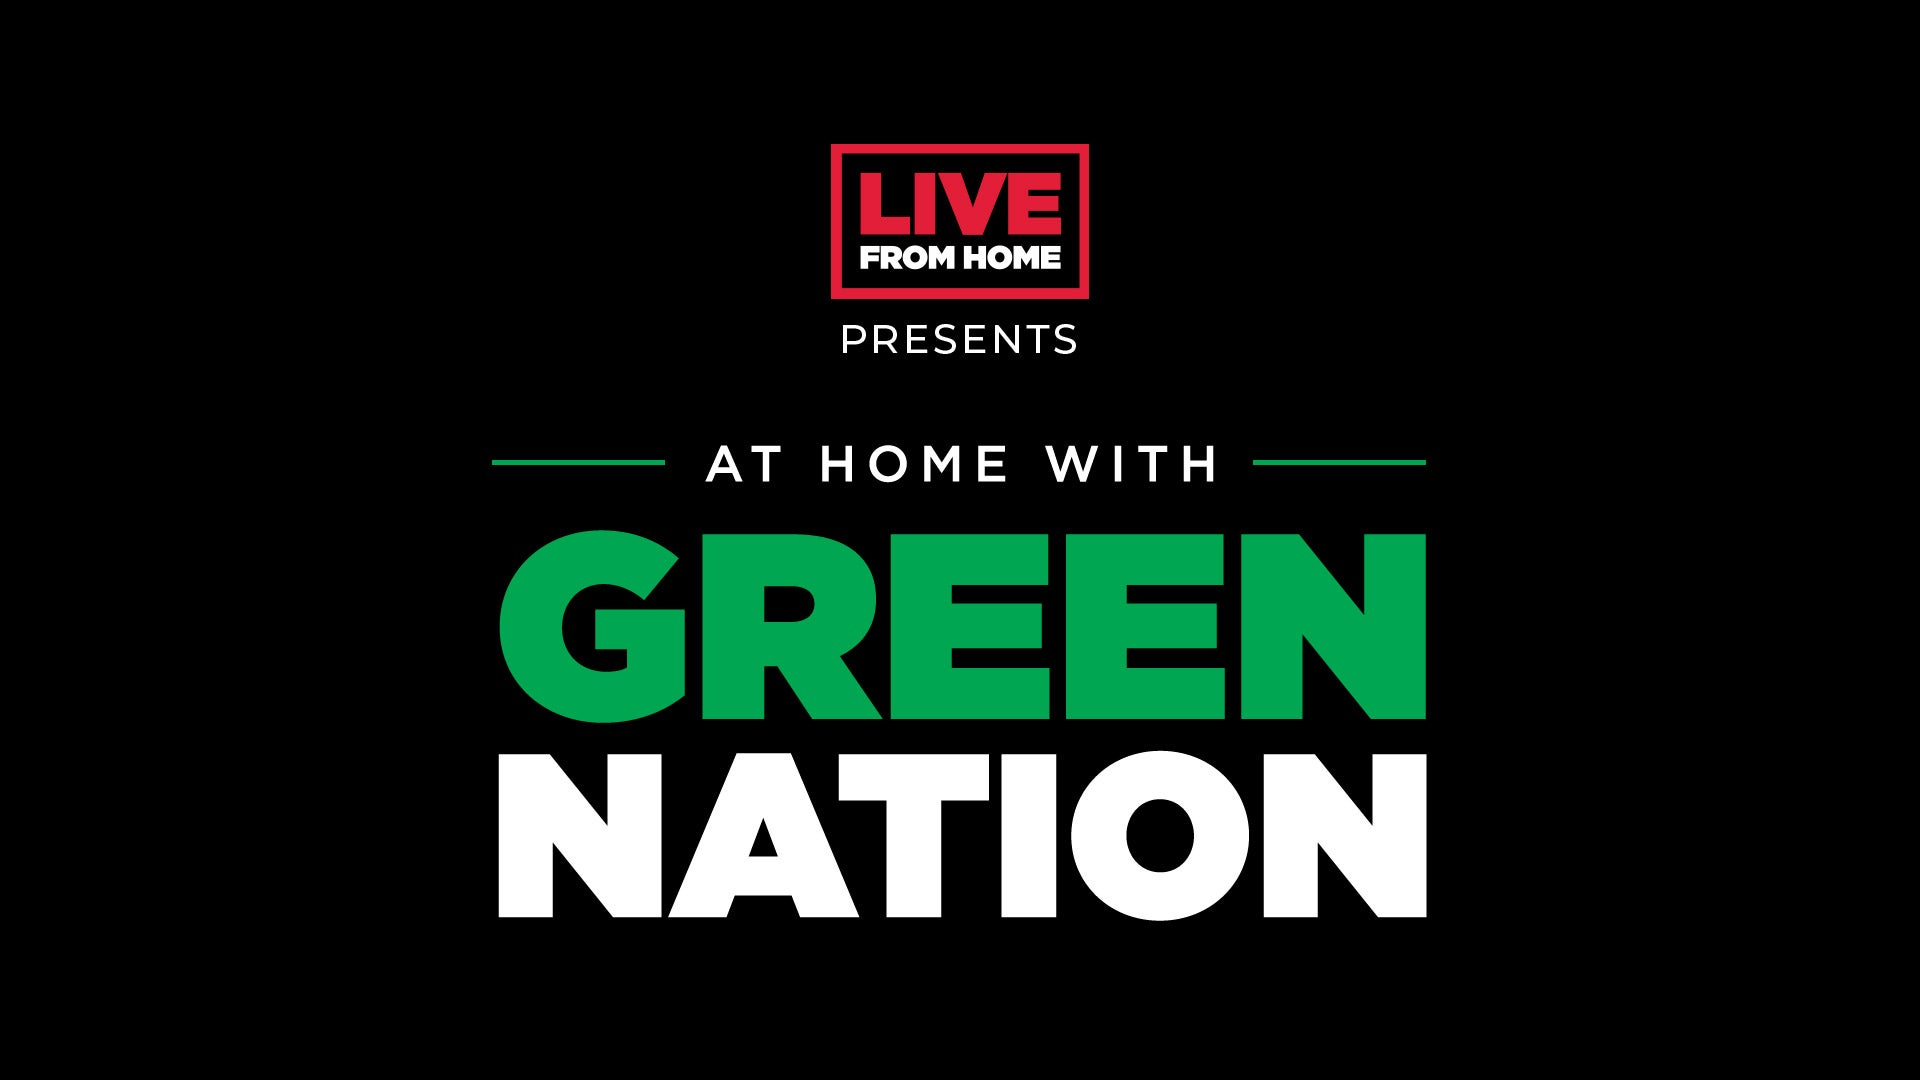 At Home with Green Nation